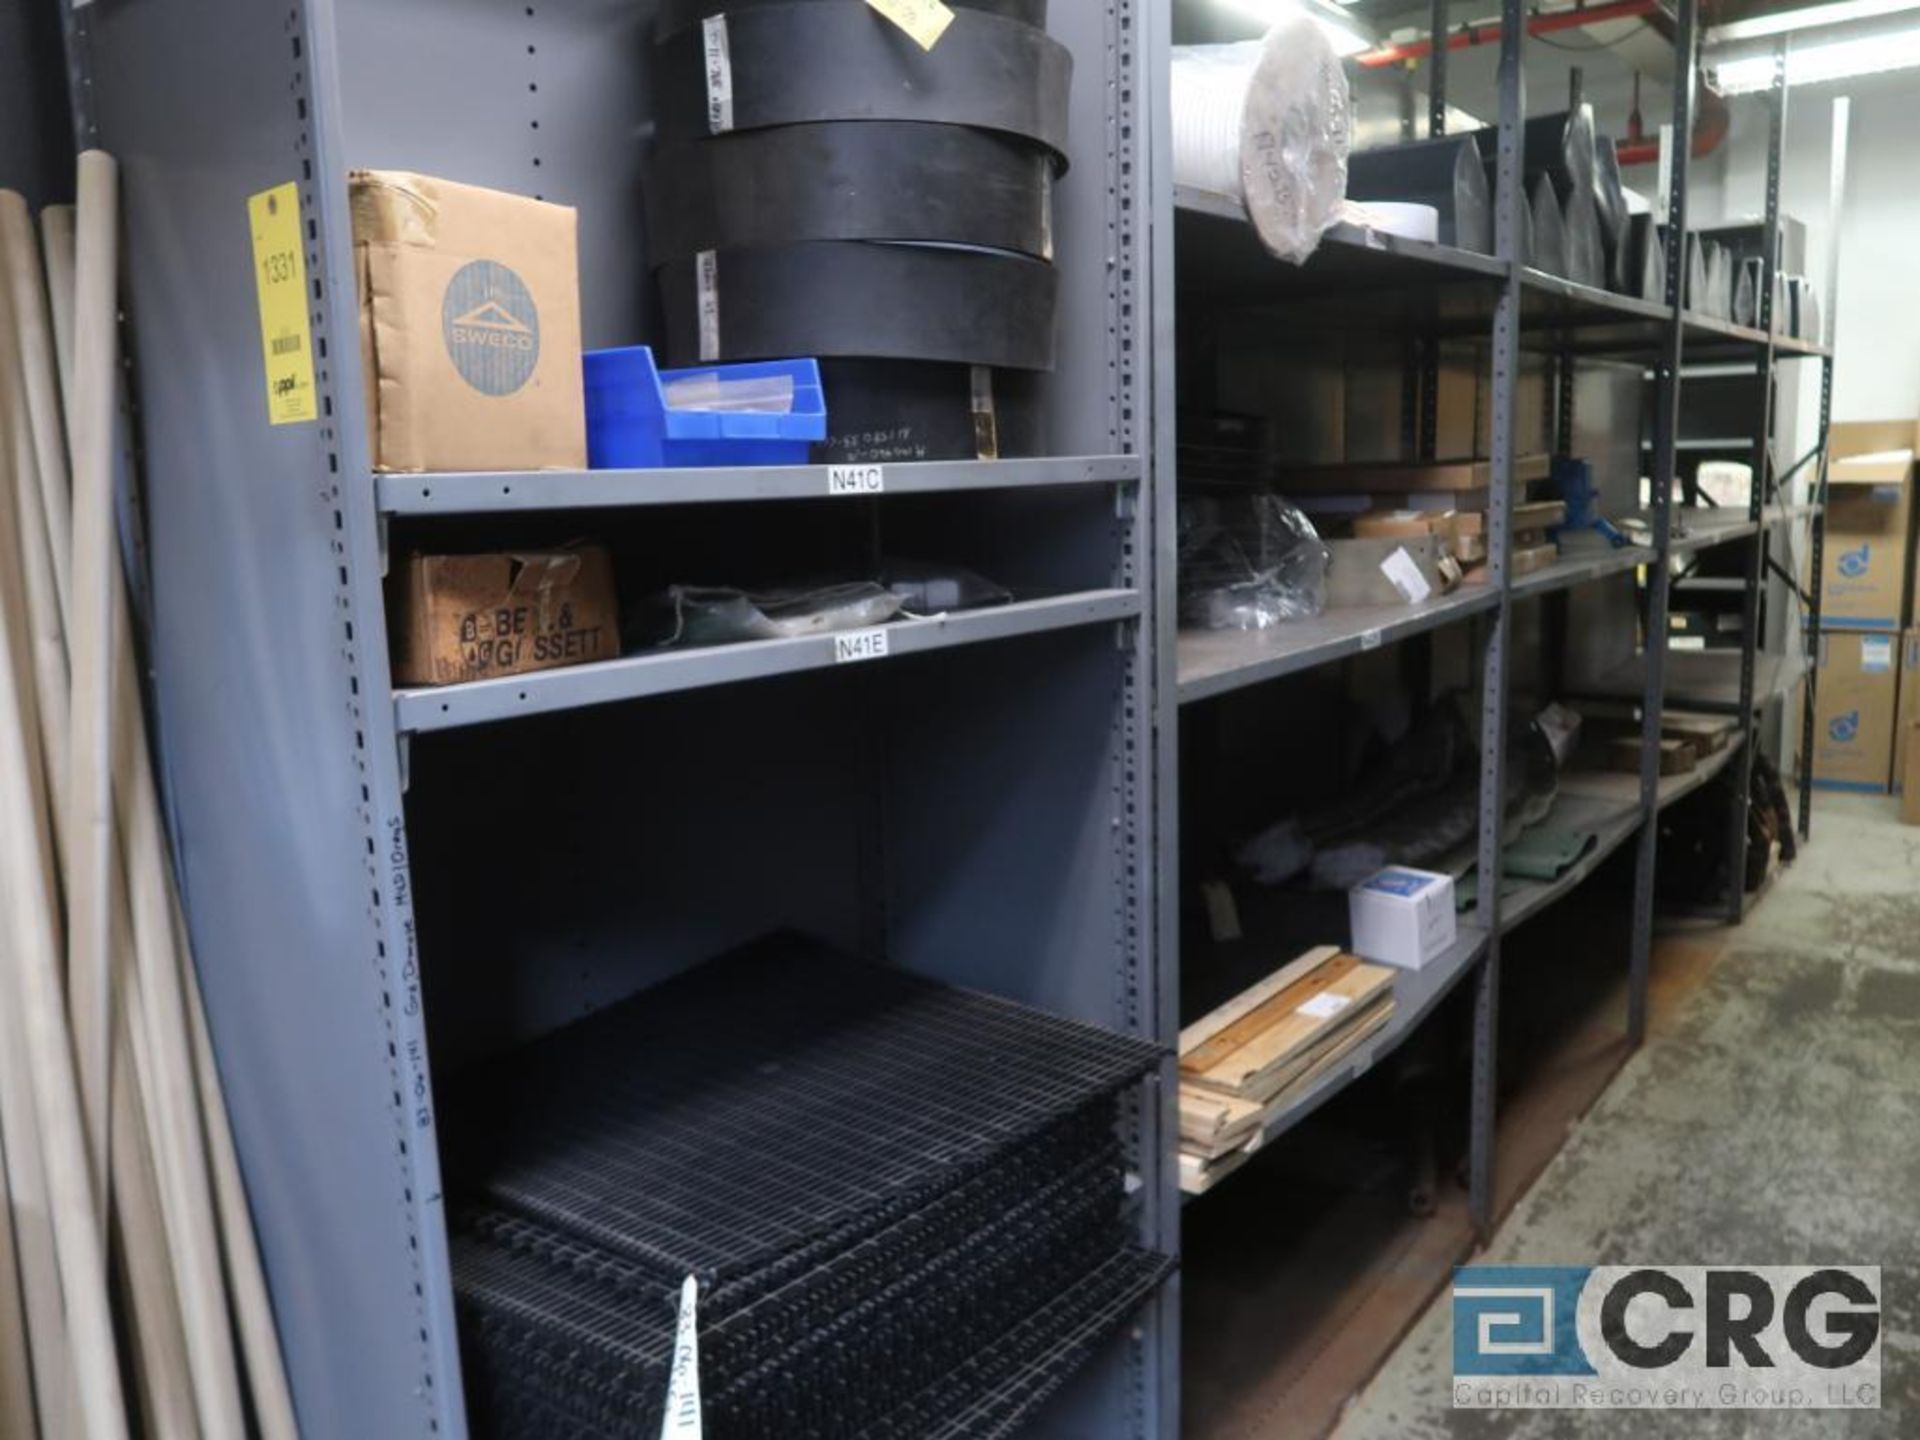 Lot of (35) sections with assorted parts including gaskets, fittings, shaft pins, gears, and - Image 2 of 17